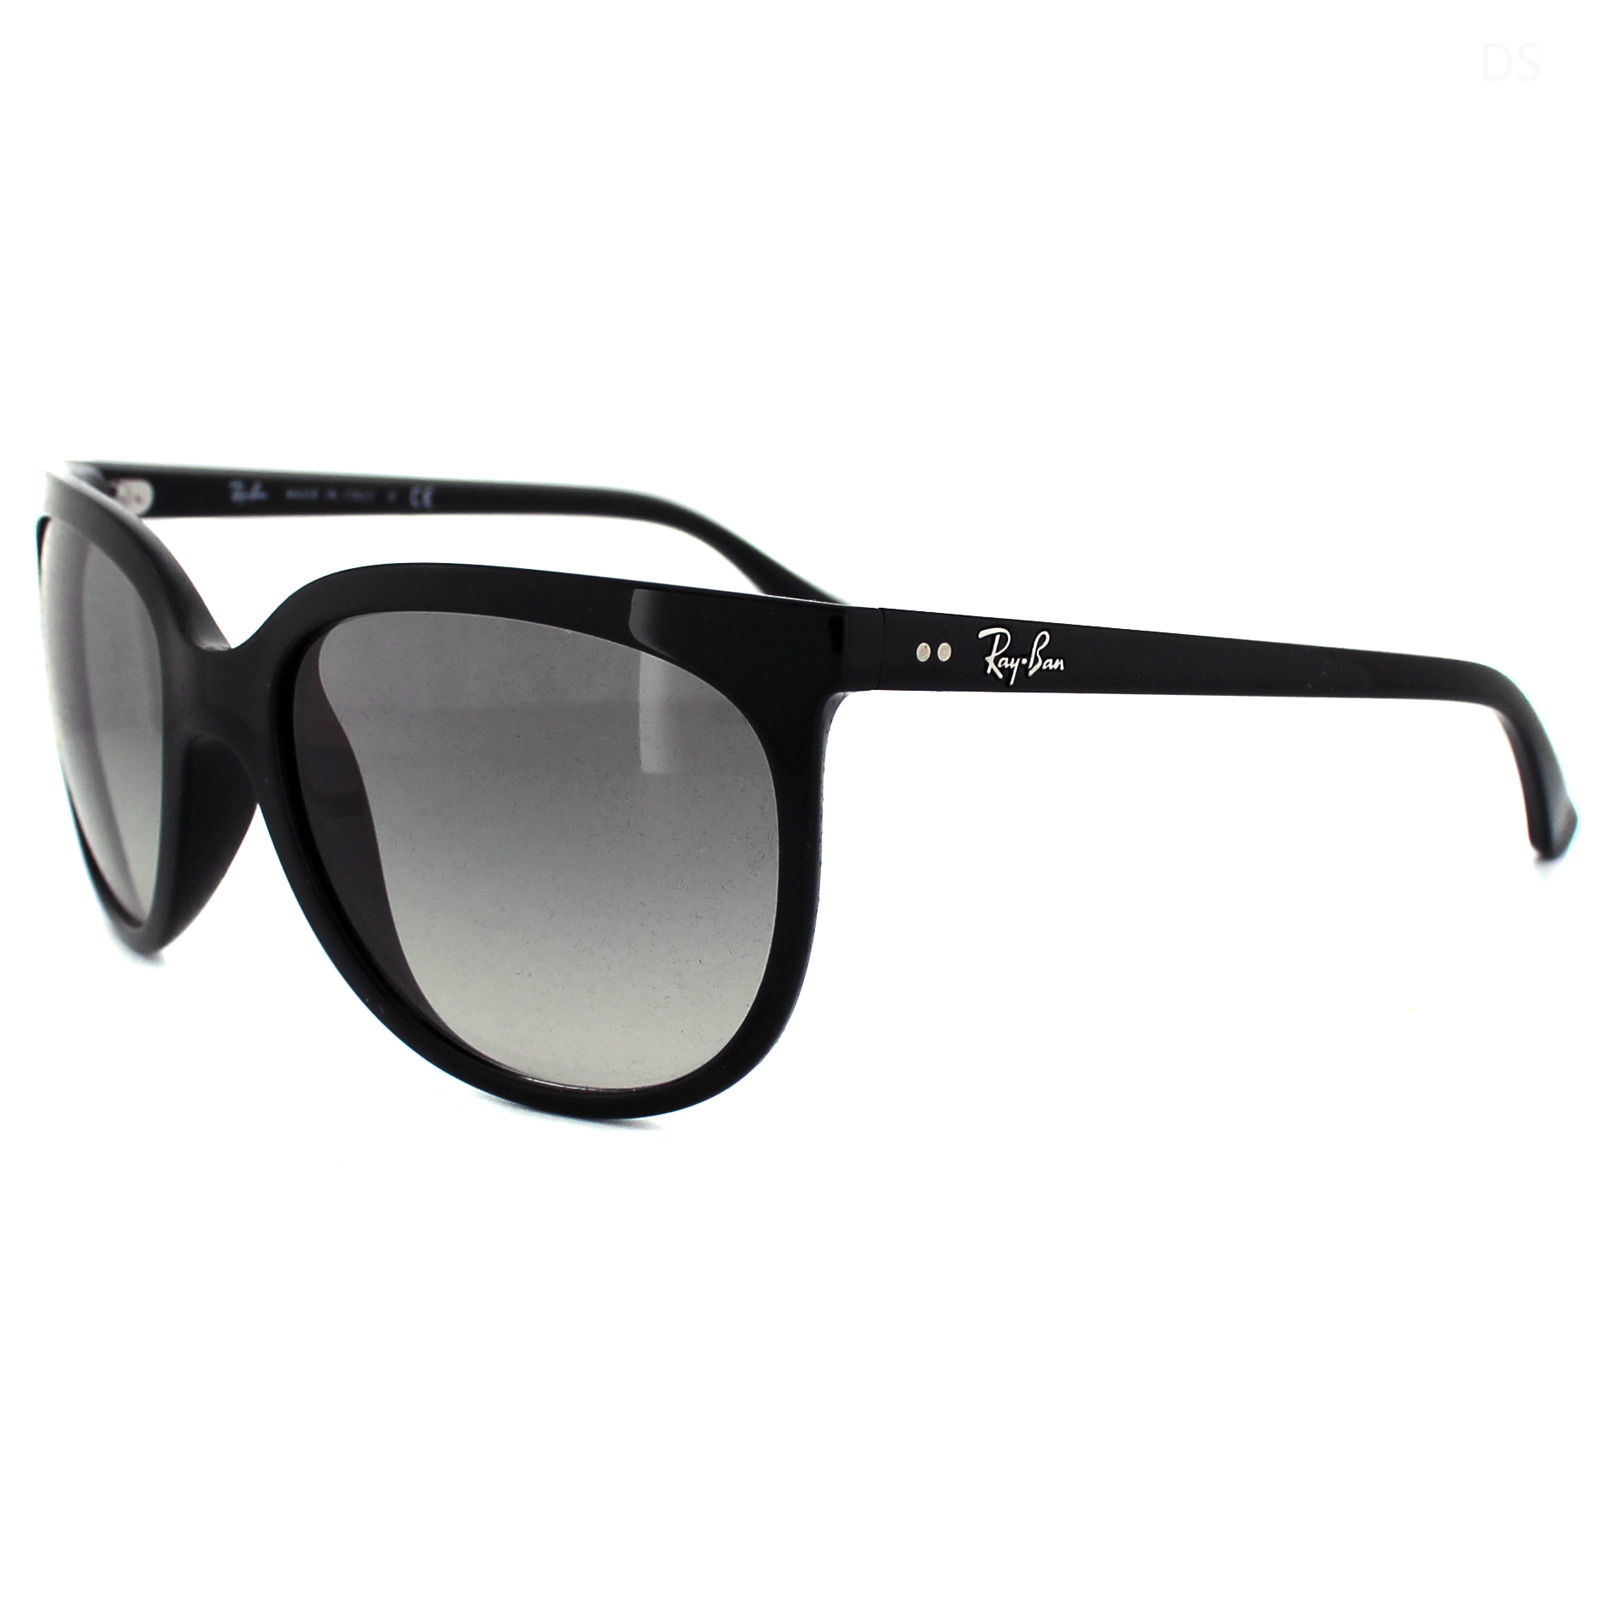 ... sale sentinel rayban sunglasses cats 1000 4126 black grey gradient 601  32 758c5 c6e72 ... f83c23ecf924